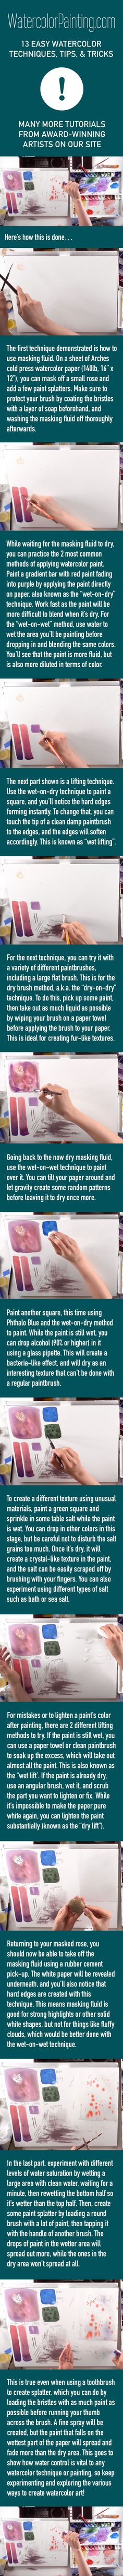 Equip yourself with 13 easy watercolor techniques, complete with alcohol and salt textures. Various beginner, intermediate & advanced watercolor techniques are taught step-by-step so you can follow along. #paintingideas Click here for free full tutorial: https://watercolorpainting.com/13-easy-watercolor-techniques/?utm_source=pinterest&utm_medium=pin-stepbystep&utm_campaign=pinterest-organic-footprint&utm_content=13-easy-watercolor-techniques